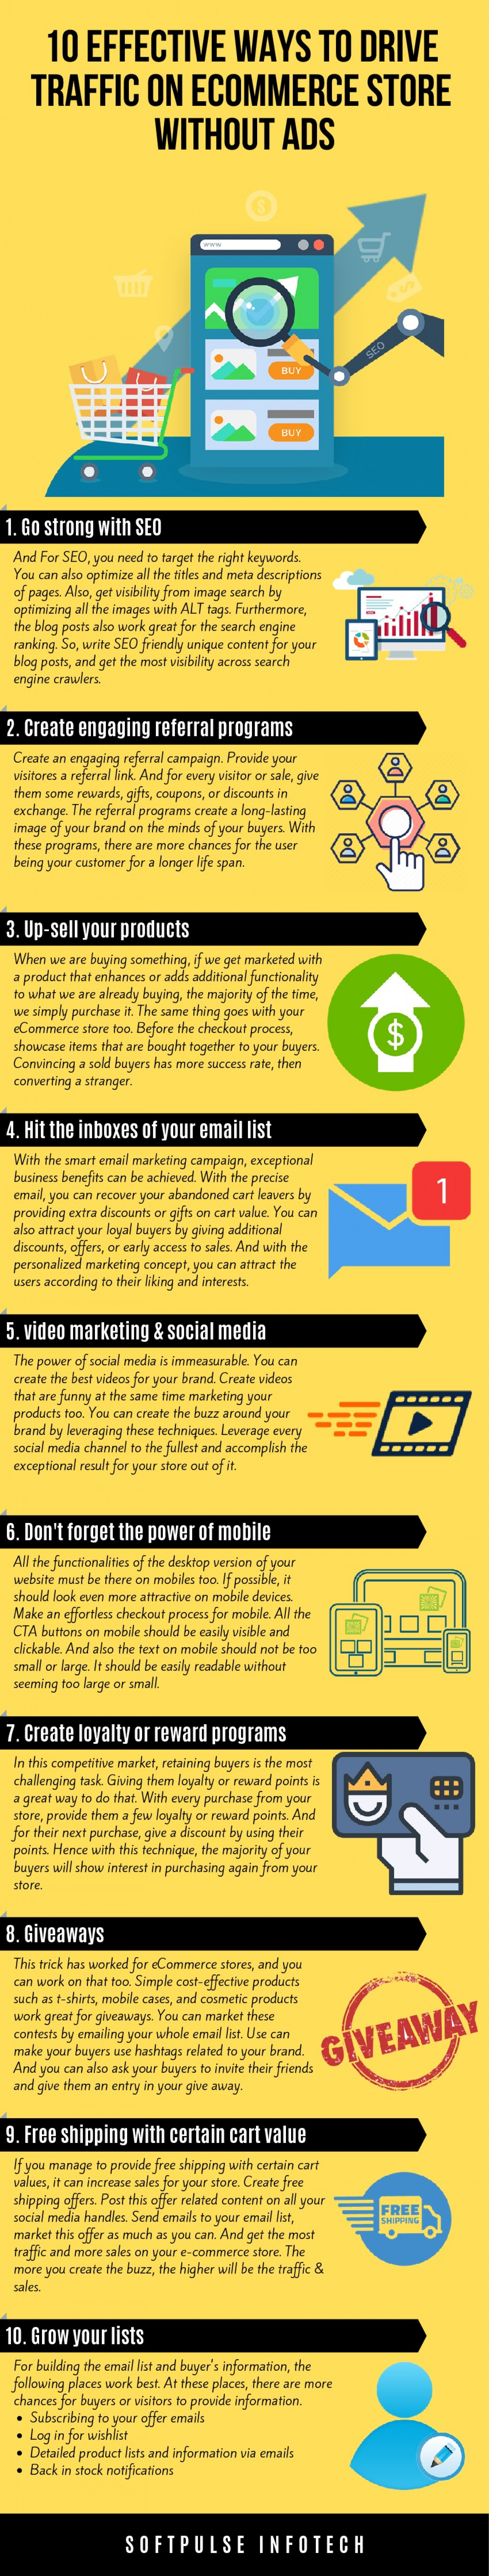 10 Effective Ways to Drive Traffic on eCommerce Store Without Ads Infographic